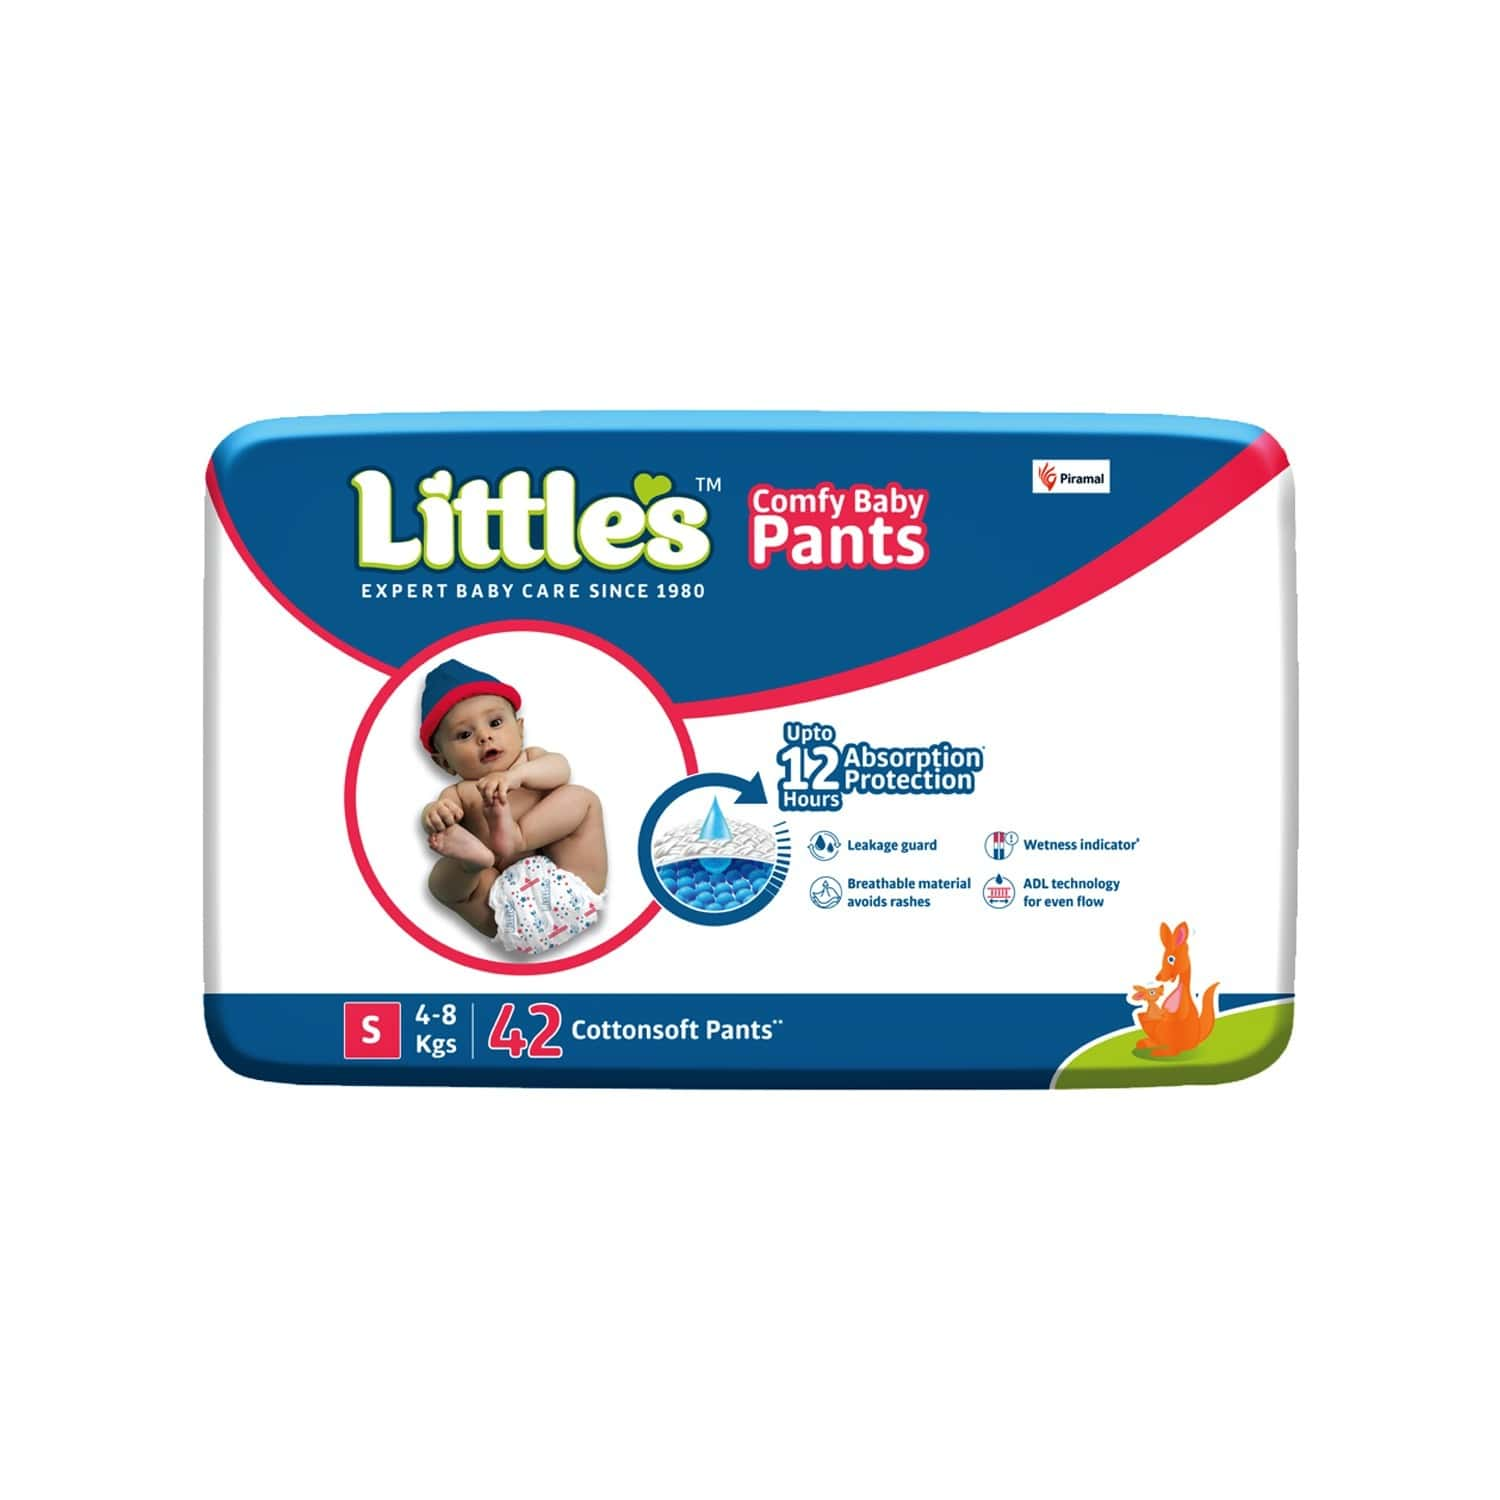 Little's Comfy Baby Pants Diapers With Wetness Indicator And 12 Hours Absorption - Small 42 Pants